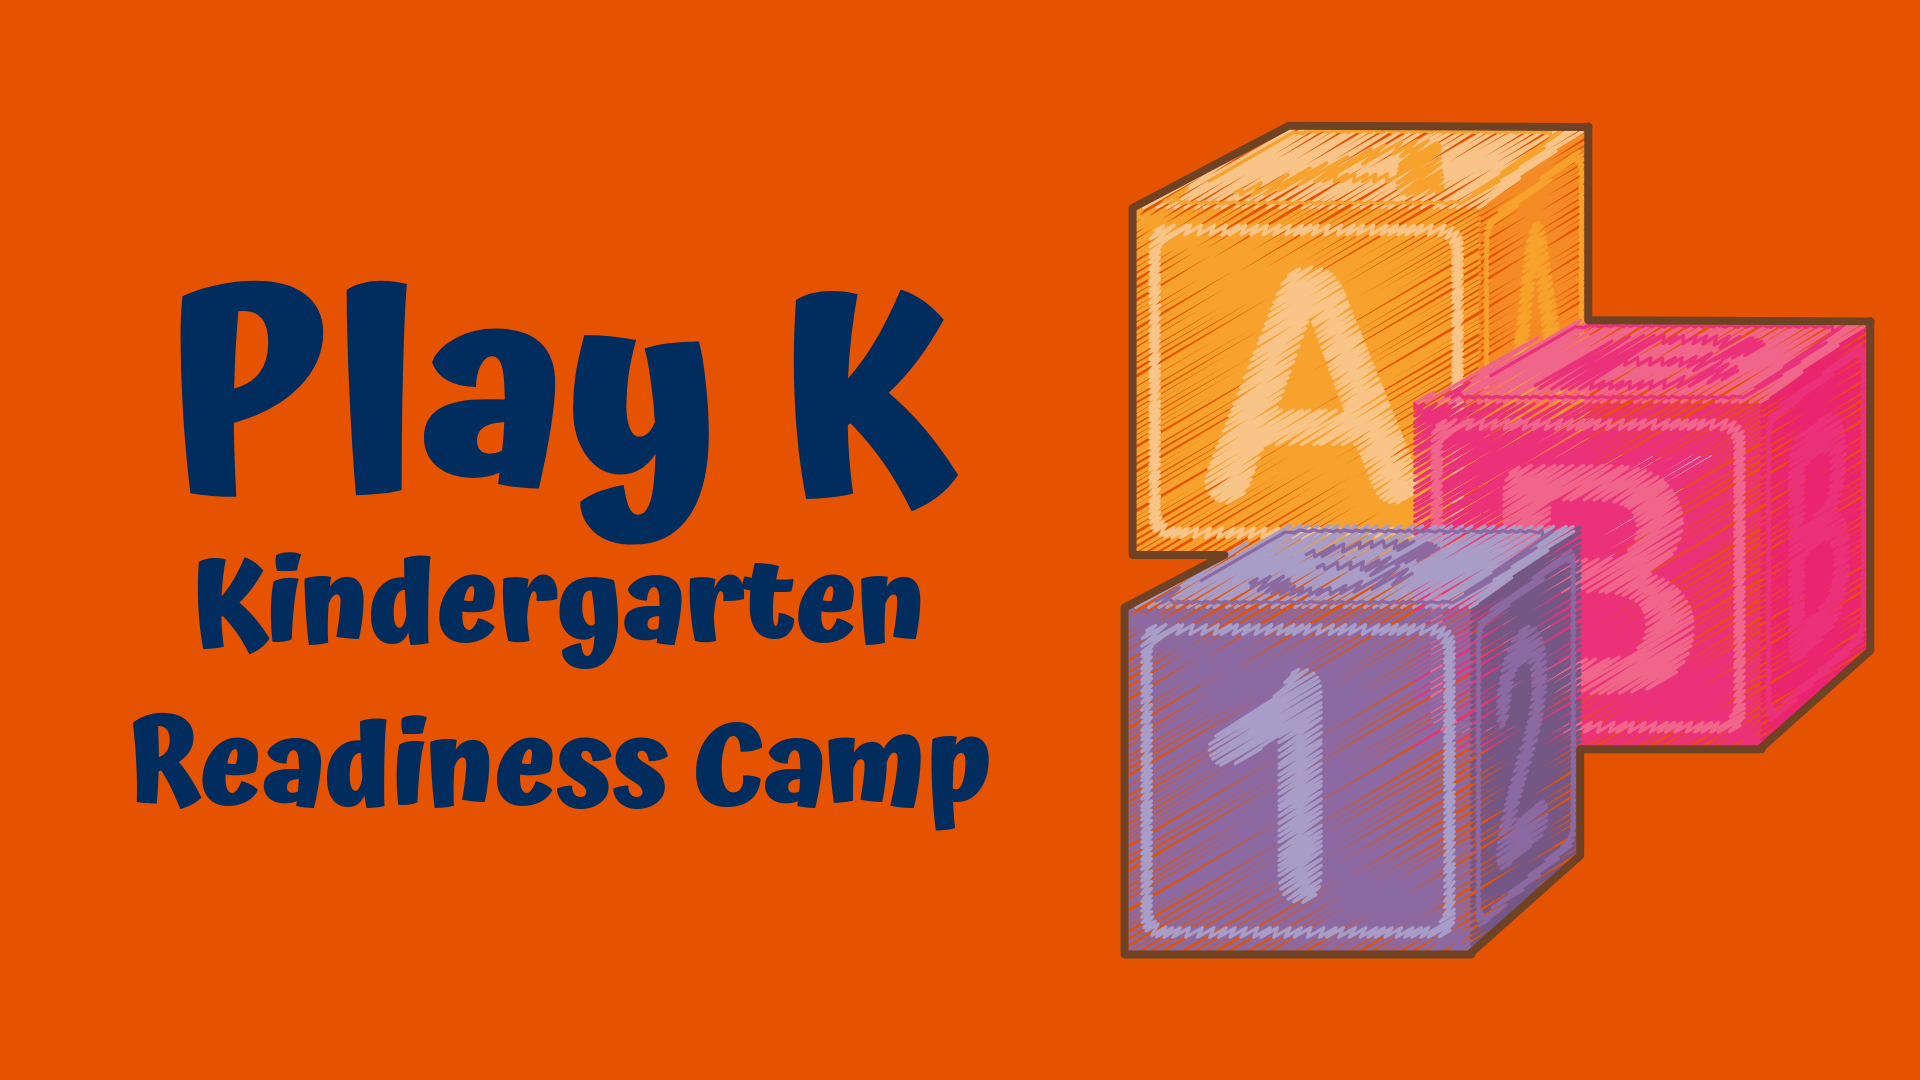 Play K: Kindergarten Readiness Camp